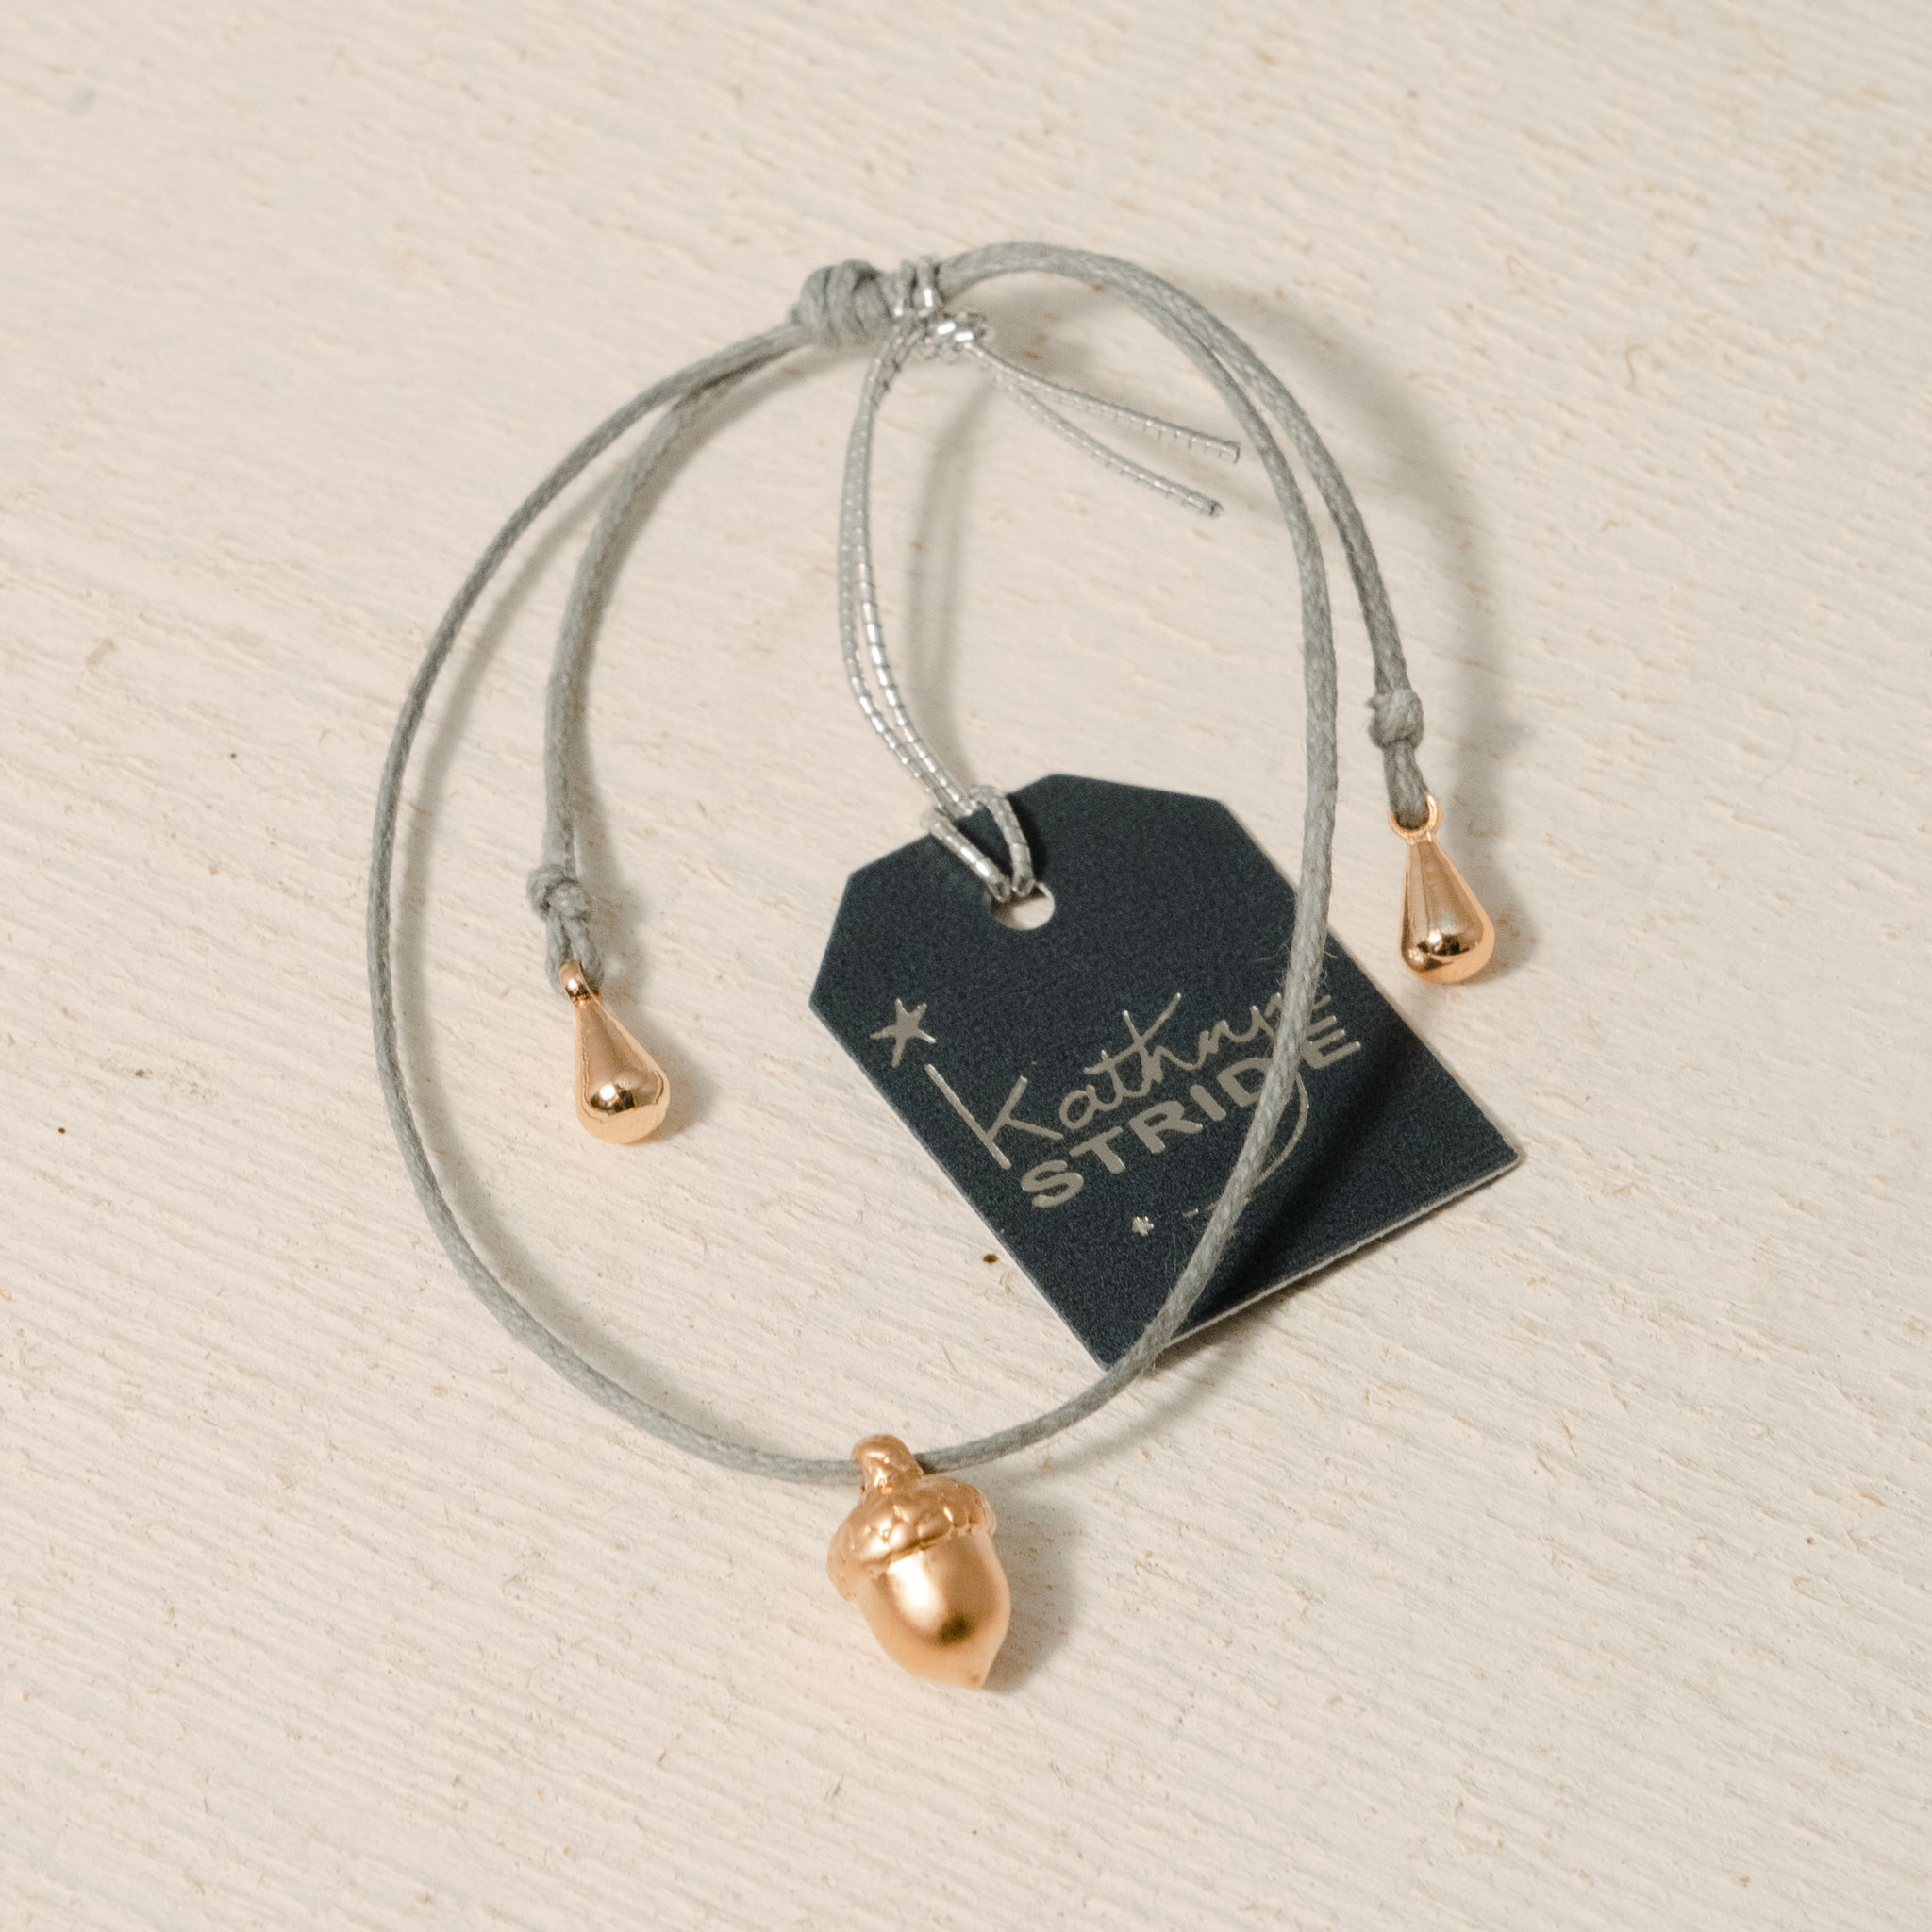 Grey cord Bracelet with Rose Gold Acorn metal charm